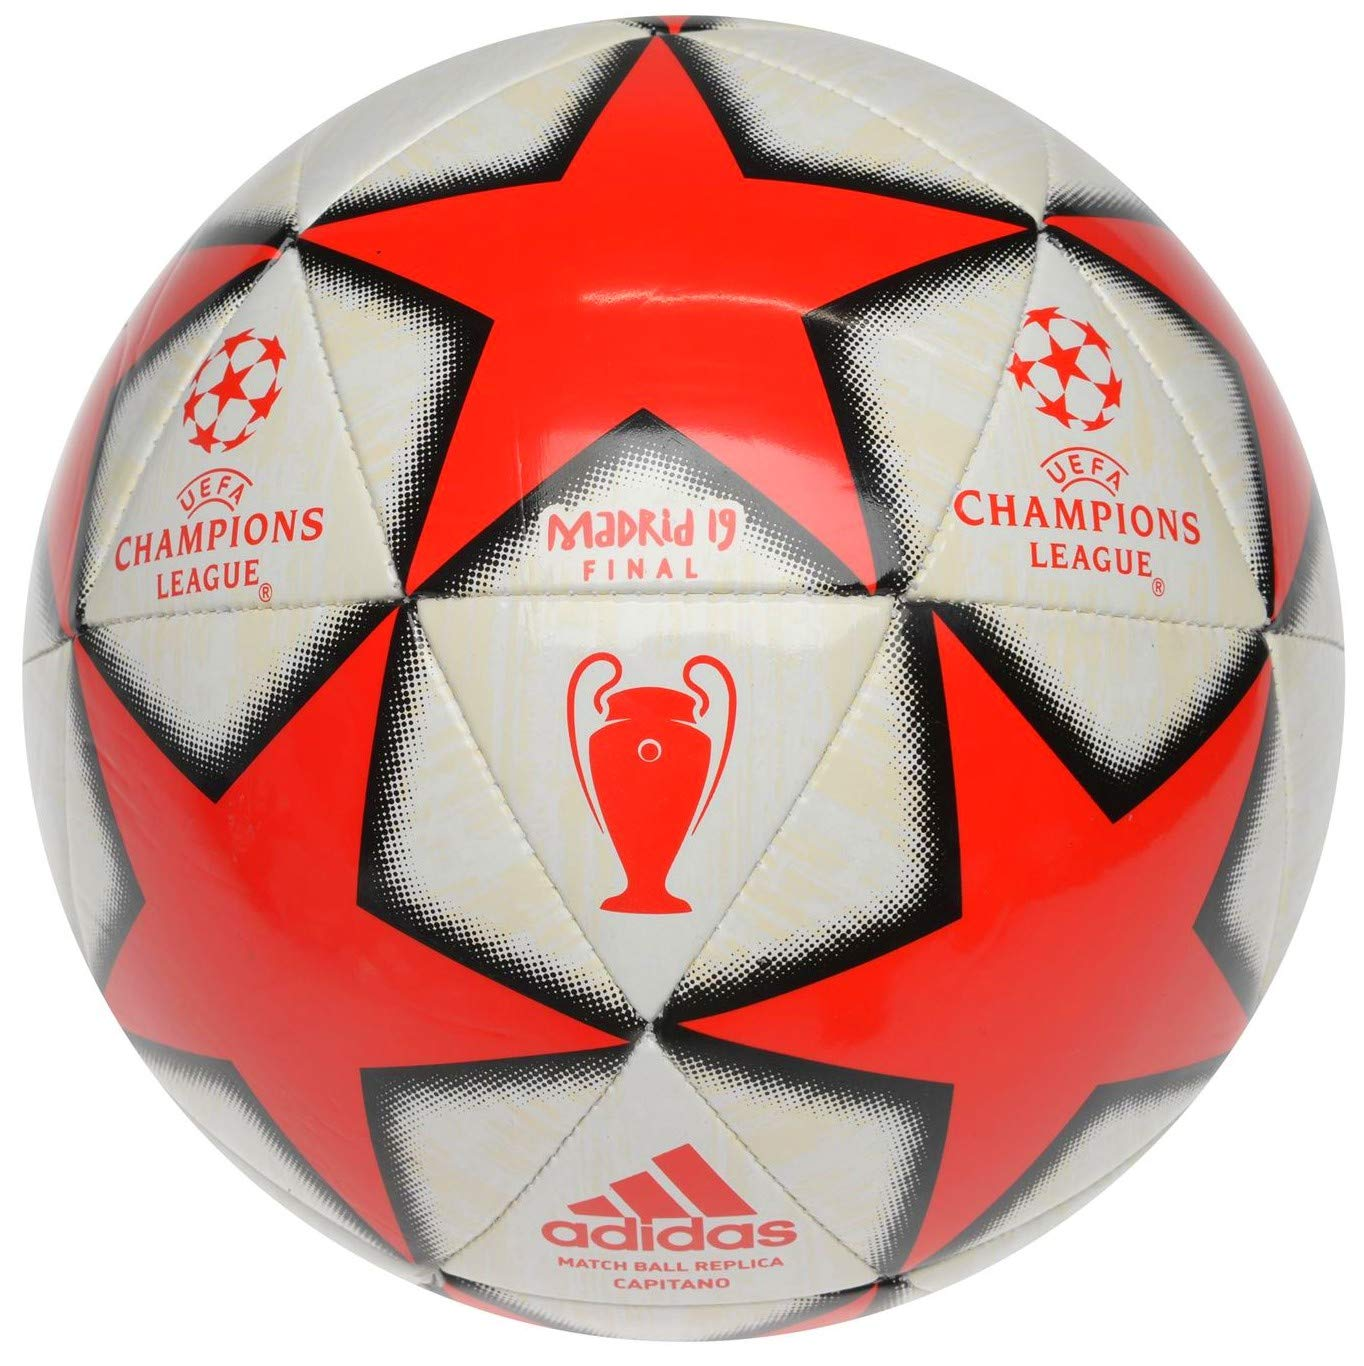 81e85d66e adidas 2019 Champions League Madrid Final Football Europe Tournament Ball  Size 3 Age 2-8 Years: Amazon.co.uk: Sports & Outdoors